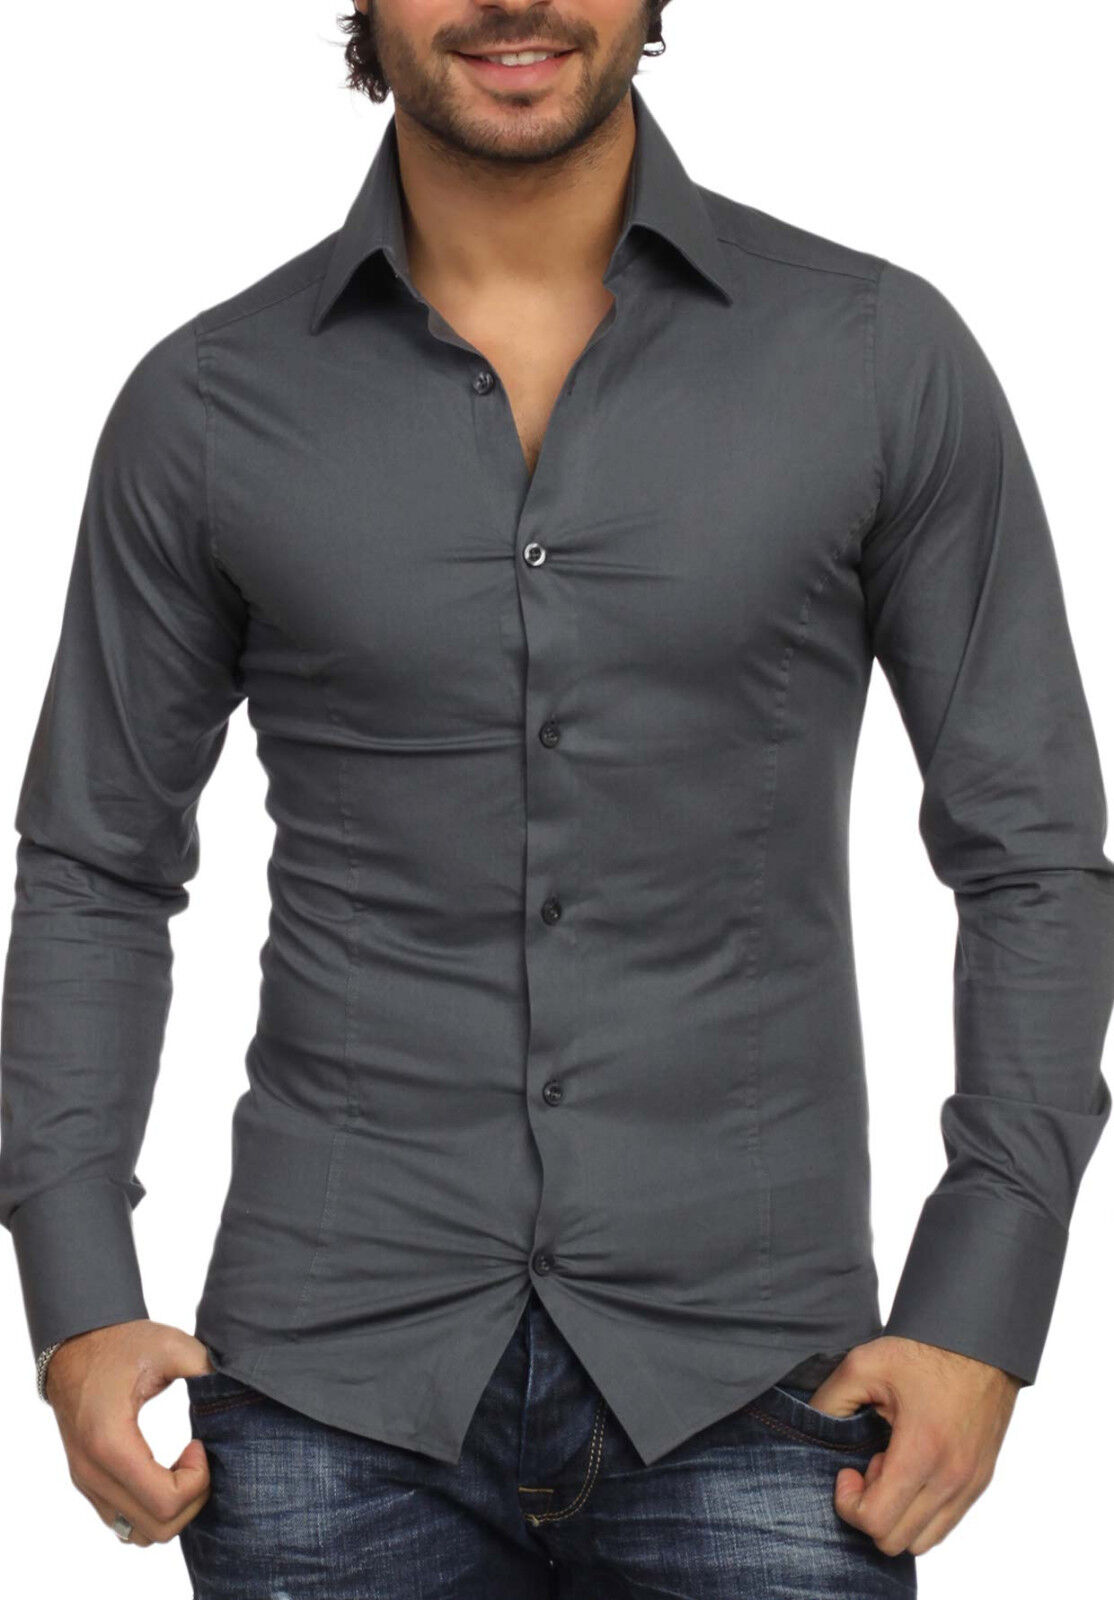 Grigio Scuro Antracite - Anthracite Waisted Shirt